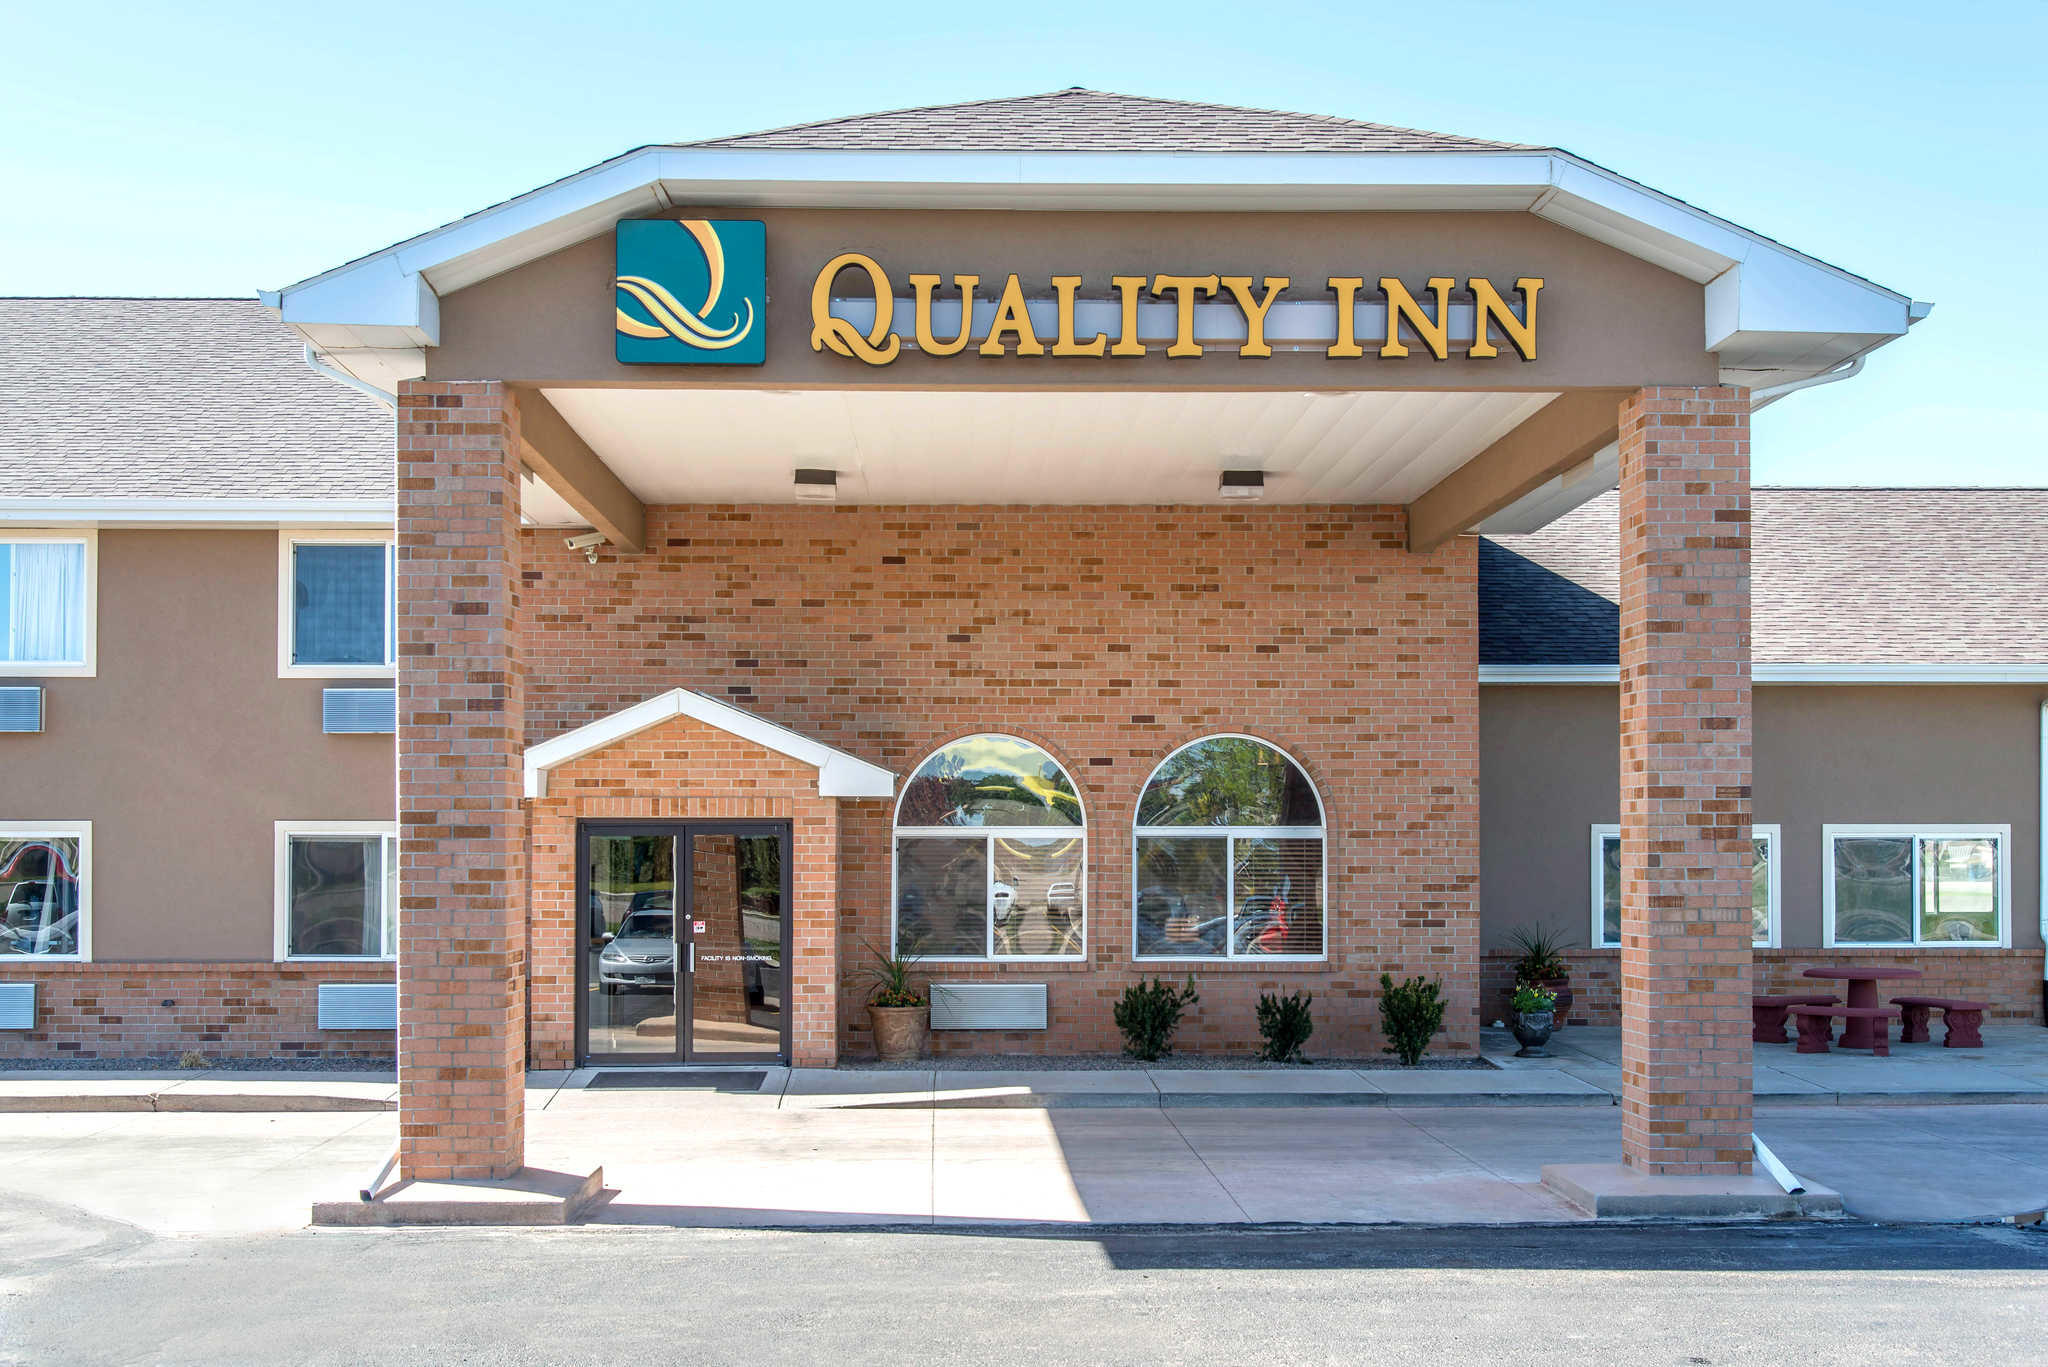 The Quality Inn hotel in Burlington, IA is near Catfish Bend Riverboat Casino and the Mississippi River. Free breakfast and internet offered. Book Now! The Quality Inn hotel in Burlington, IA is near Catfish Bend Riverboat Casino and the Mississippi River. Free breakfast and internet offered.4/5().